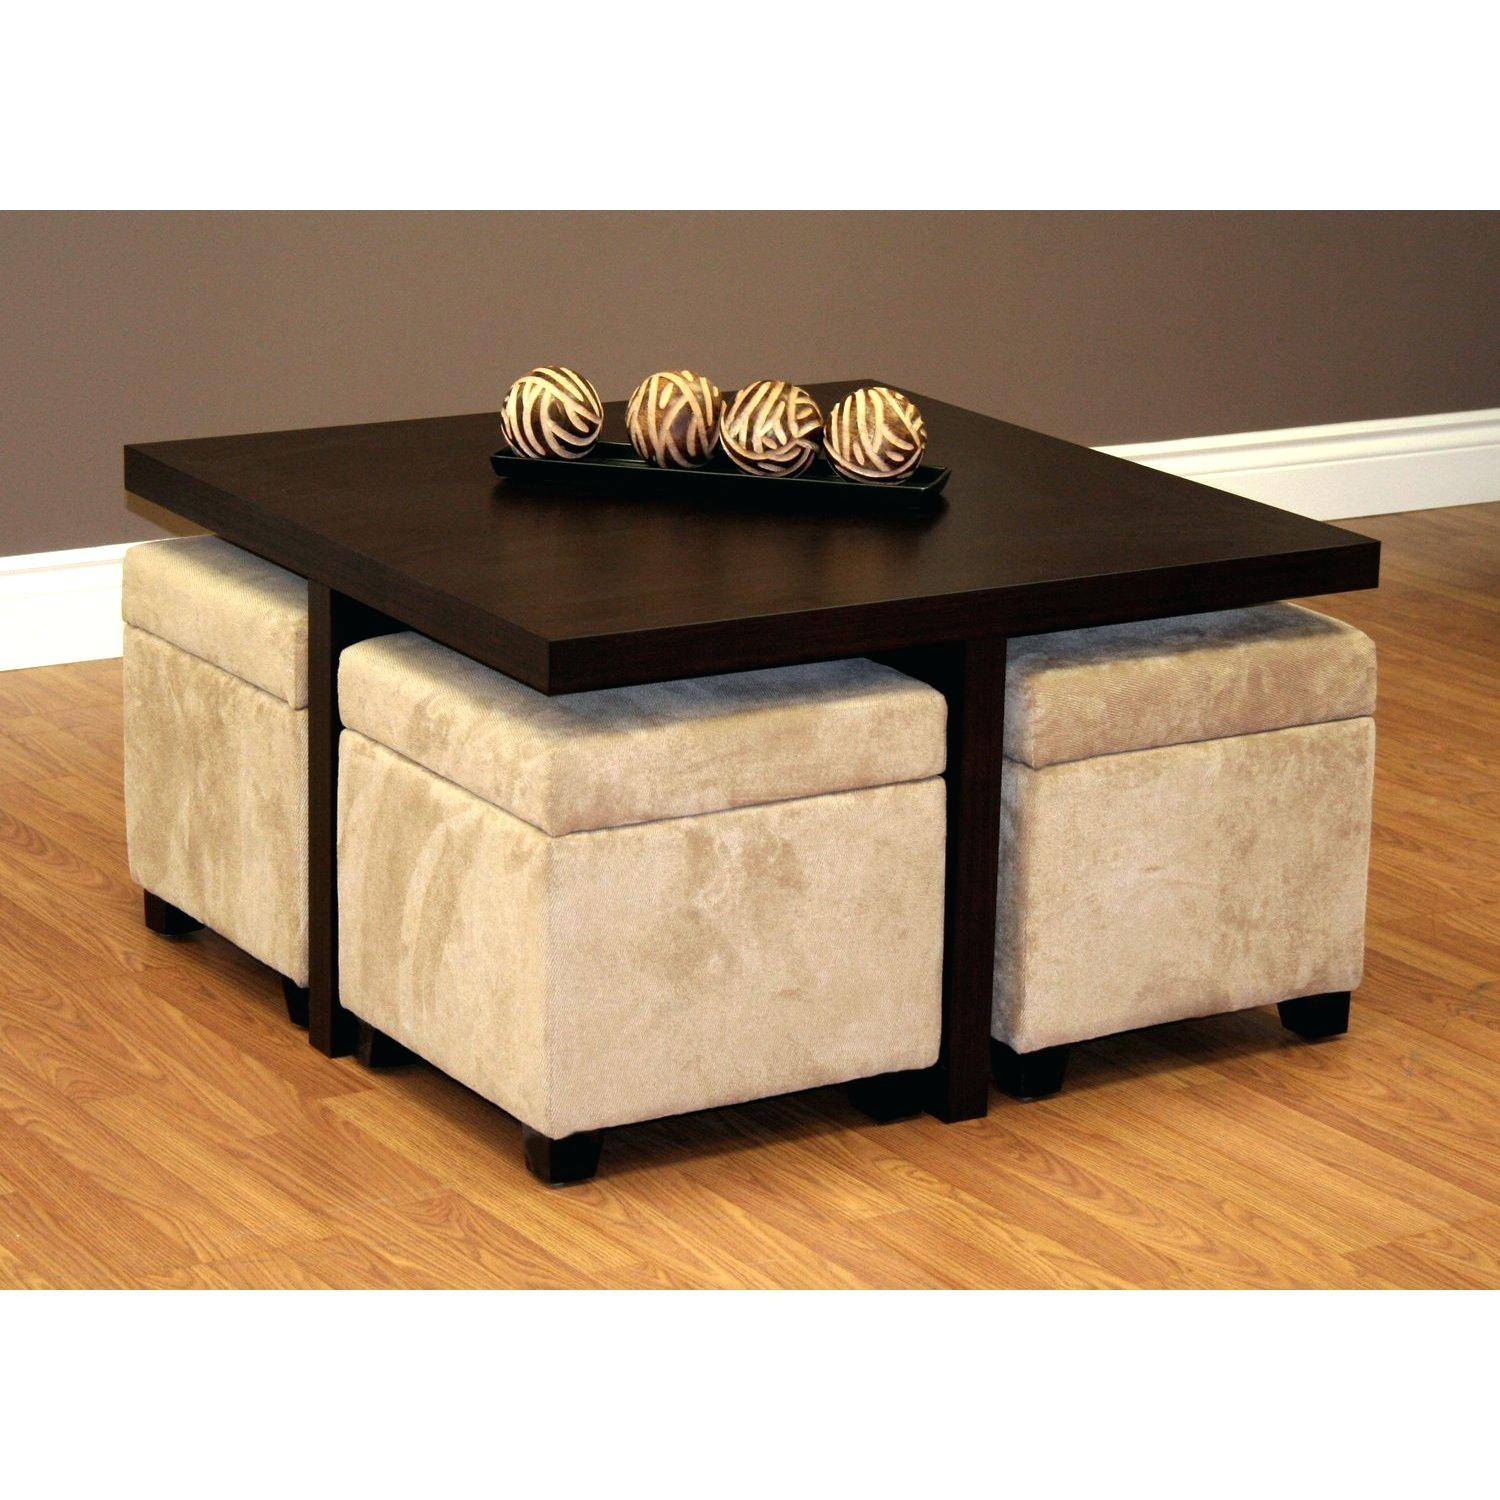 Black Coffee Table With Storage Drawers Full Size Of Largeikea Within Small Coffee Tables With Storage (View 3 of 30)